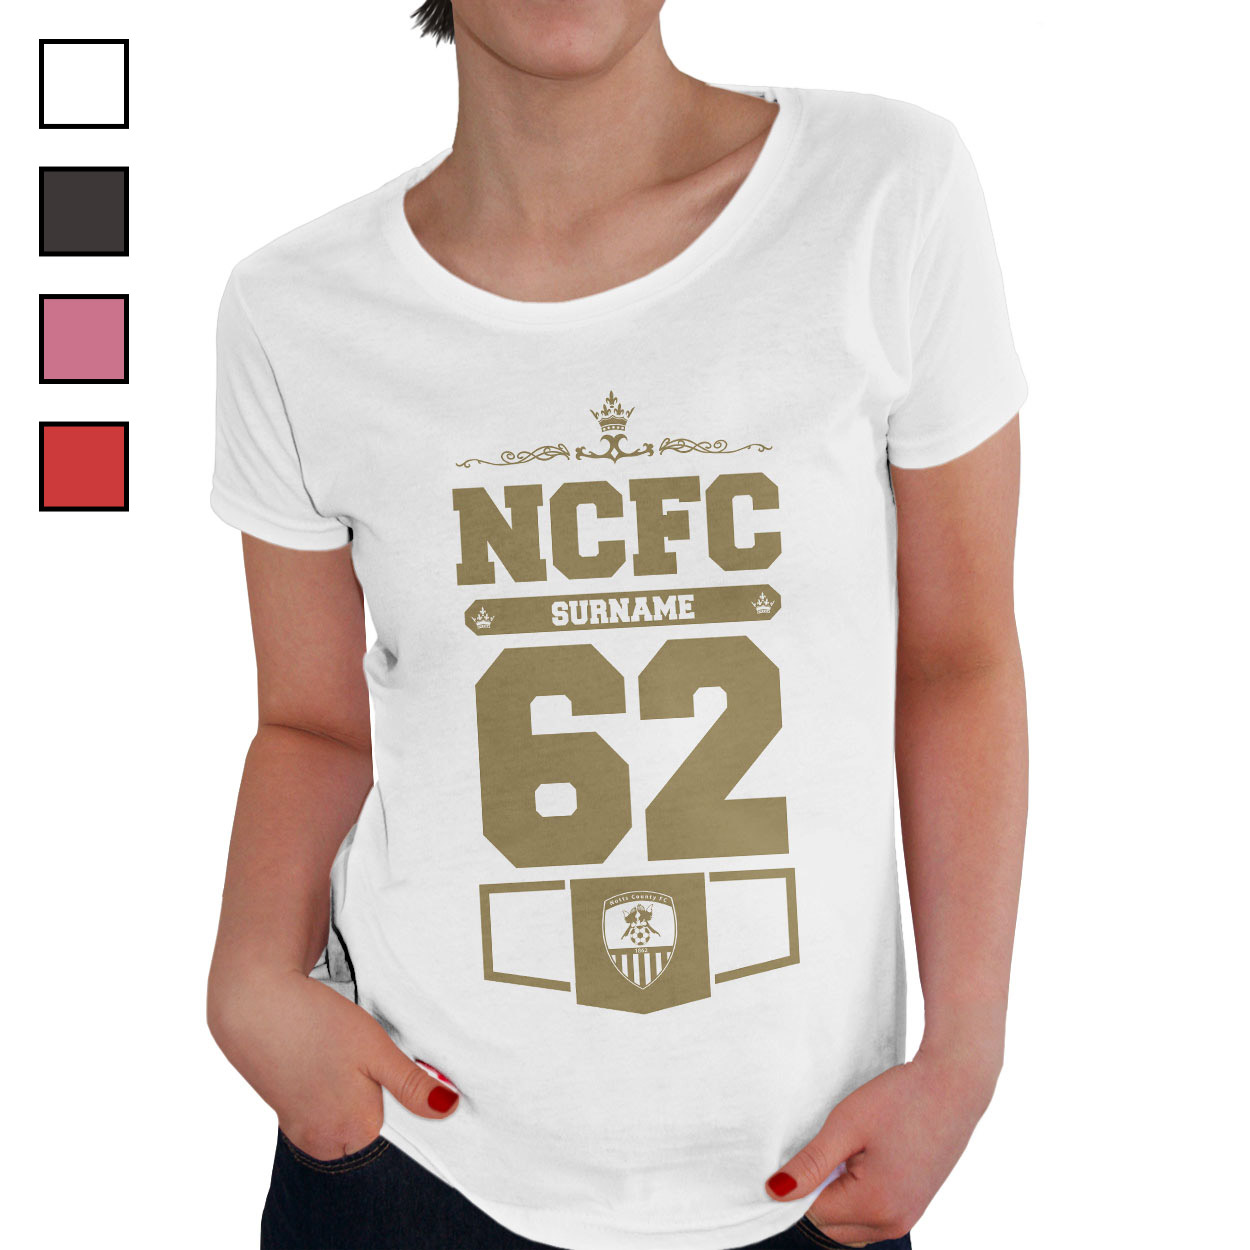 Notts County FC Ladies Club T-Shirt